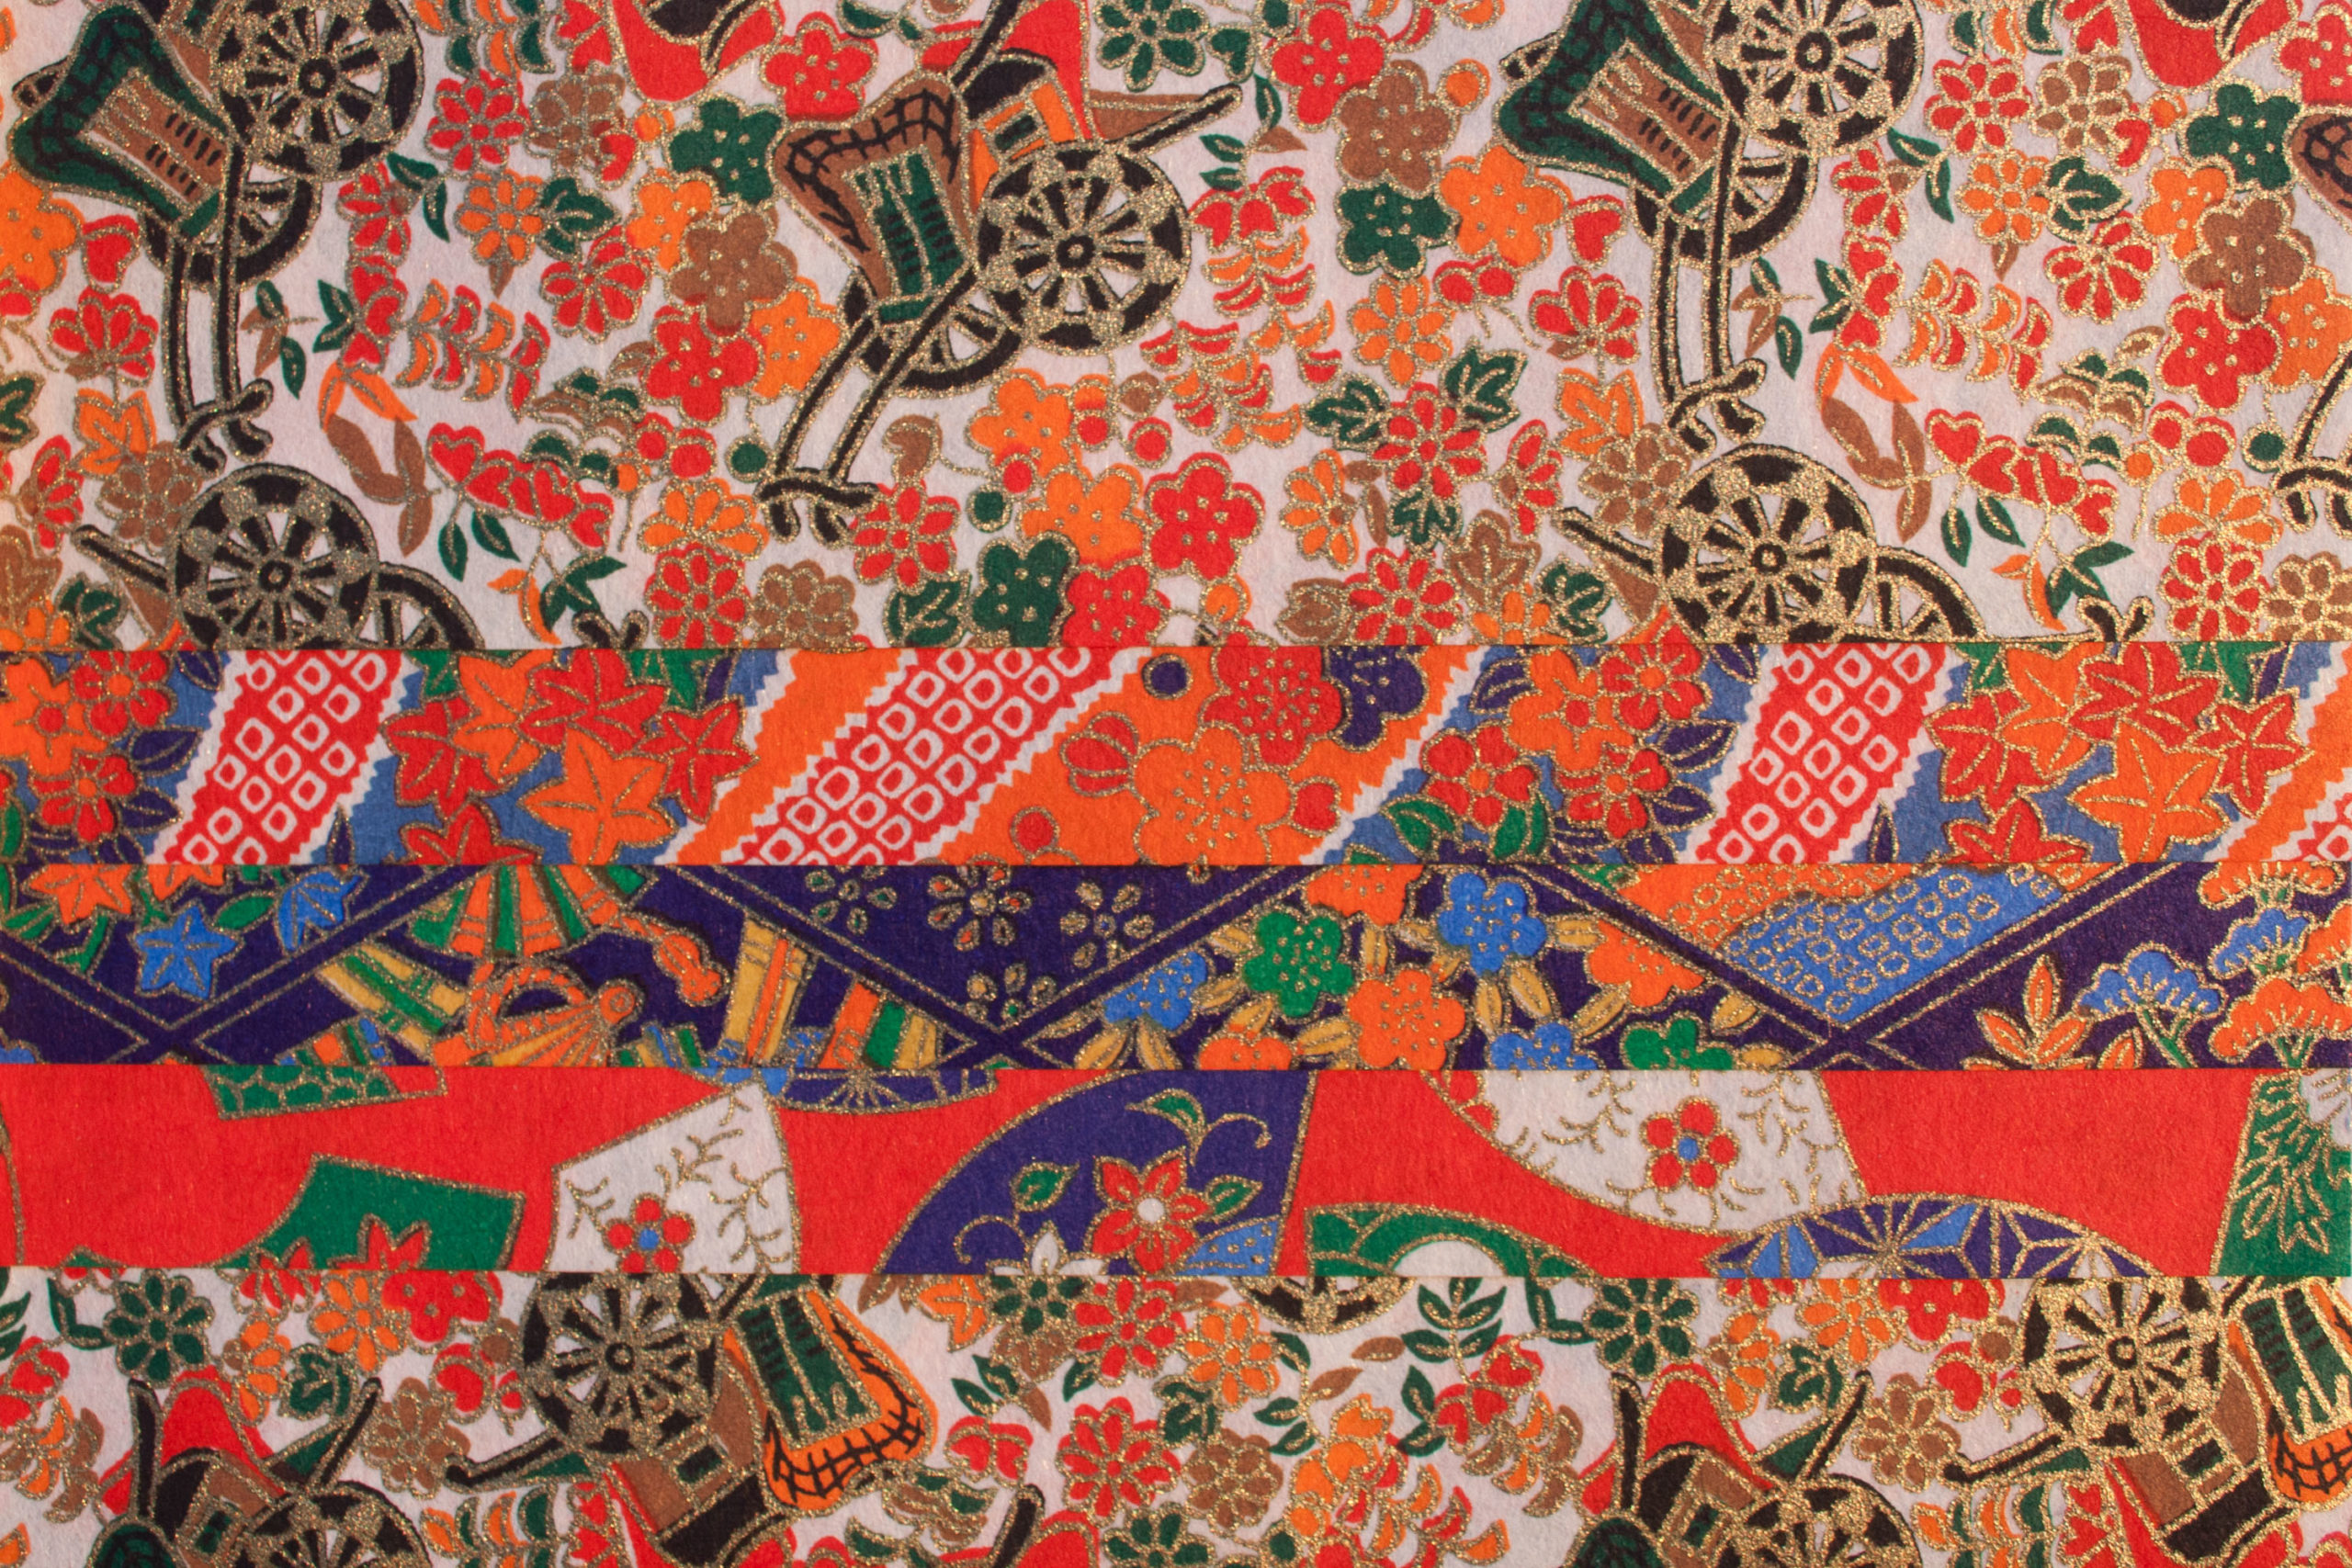 colorful paper from Japan